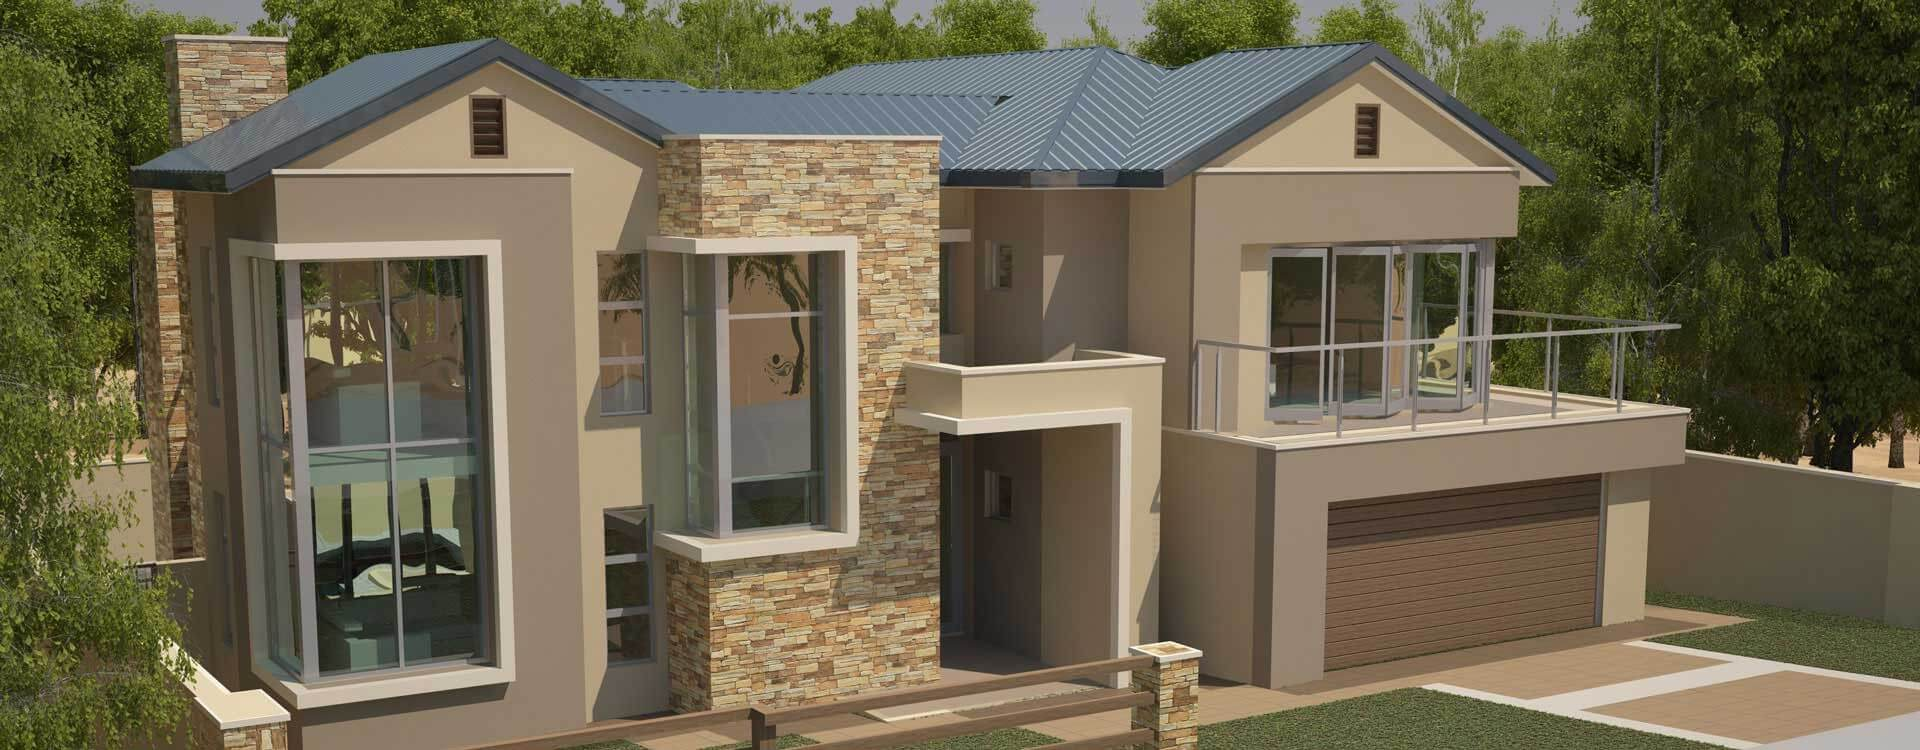 Modern Contemporary Style, House Plans, 4 Bedroom, Double Storey Floor  Plans, Modern